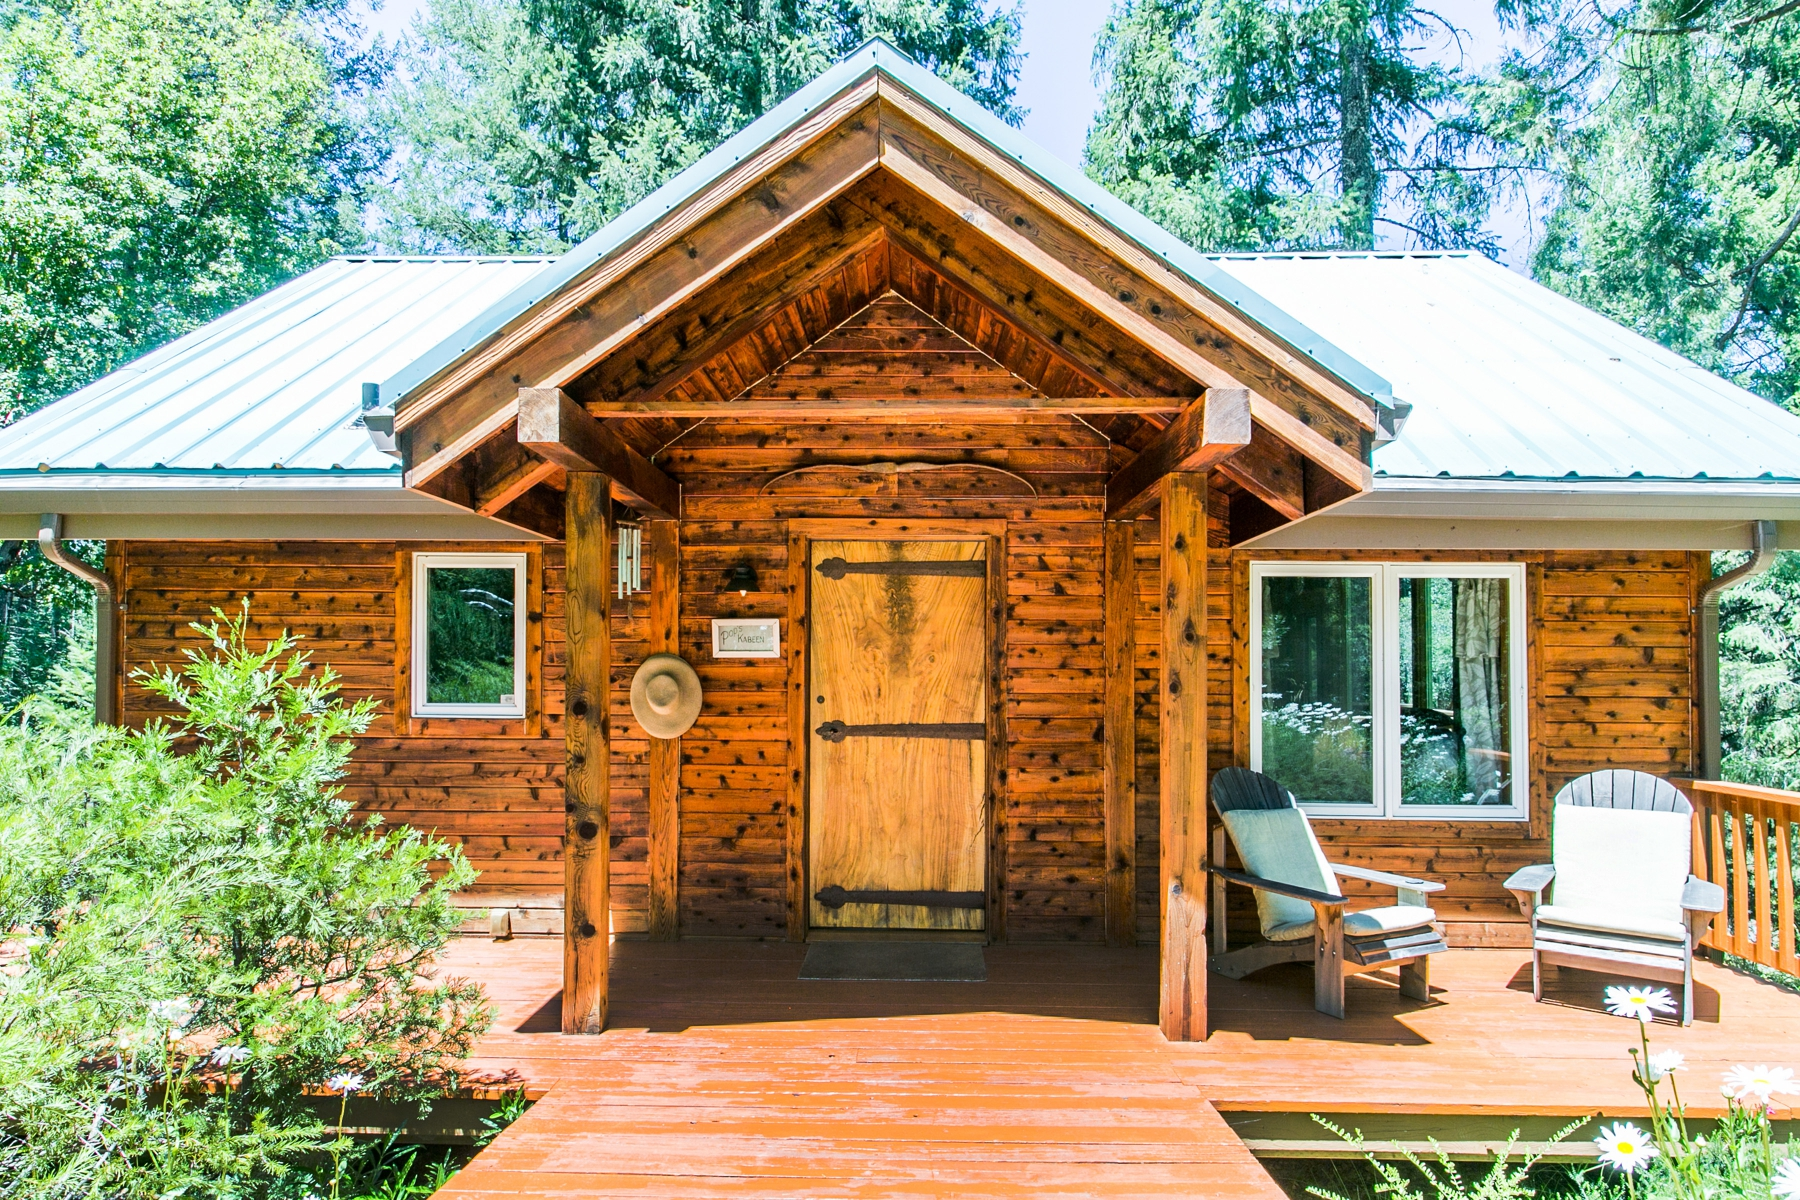 Single Family Home for Active at 21049 New Rome Road, Nevada City, CA Nevada City, California 95959 United States